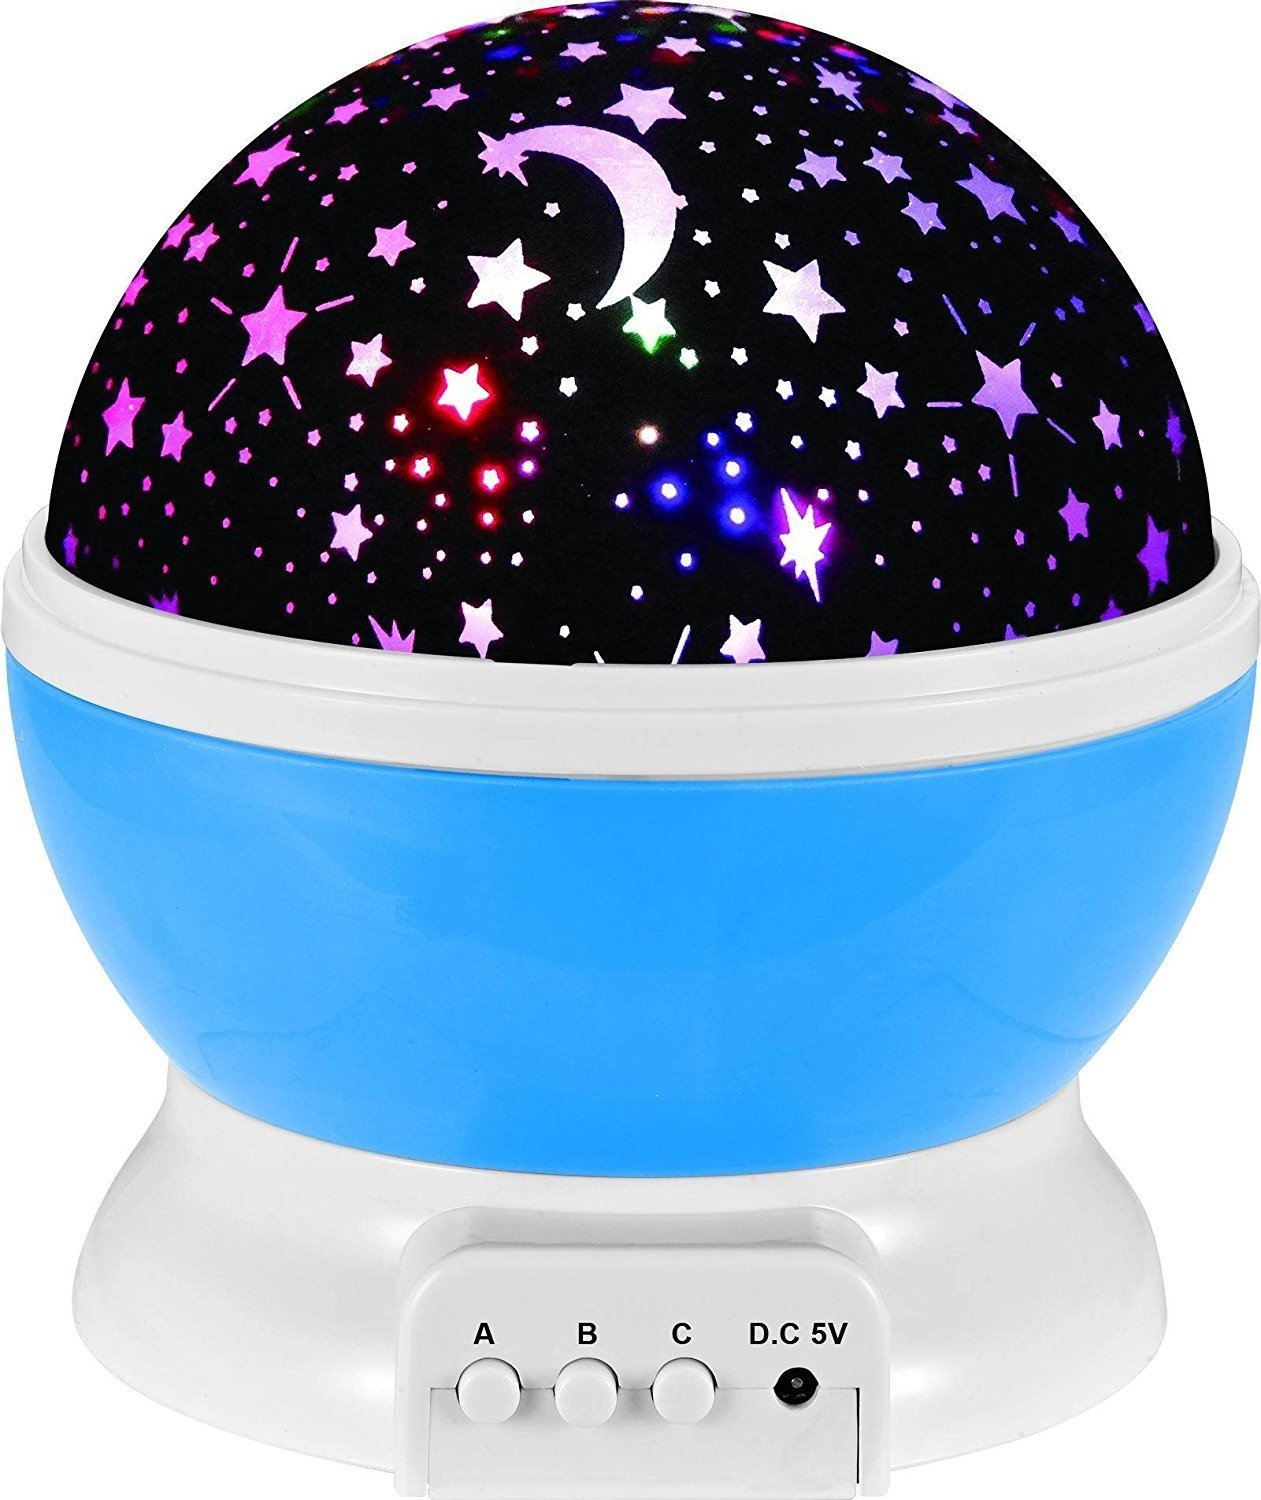 Baby Room Night Light Moon Star Projector 360 Degree Rotation-LED Night Light Lamp With This Moon,Star,Sky Romantic,Romantic 3 Modes Colorful LED Rotating Starlight Projector Best Gift for Teens Kids.